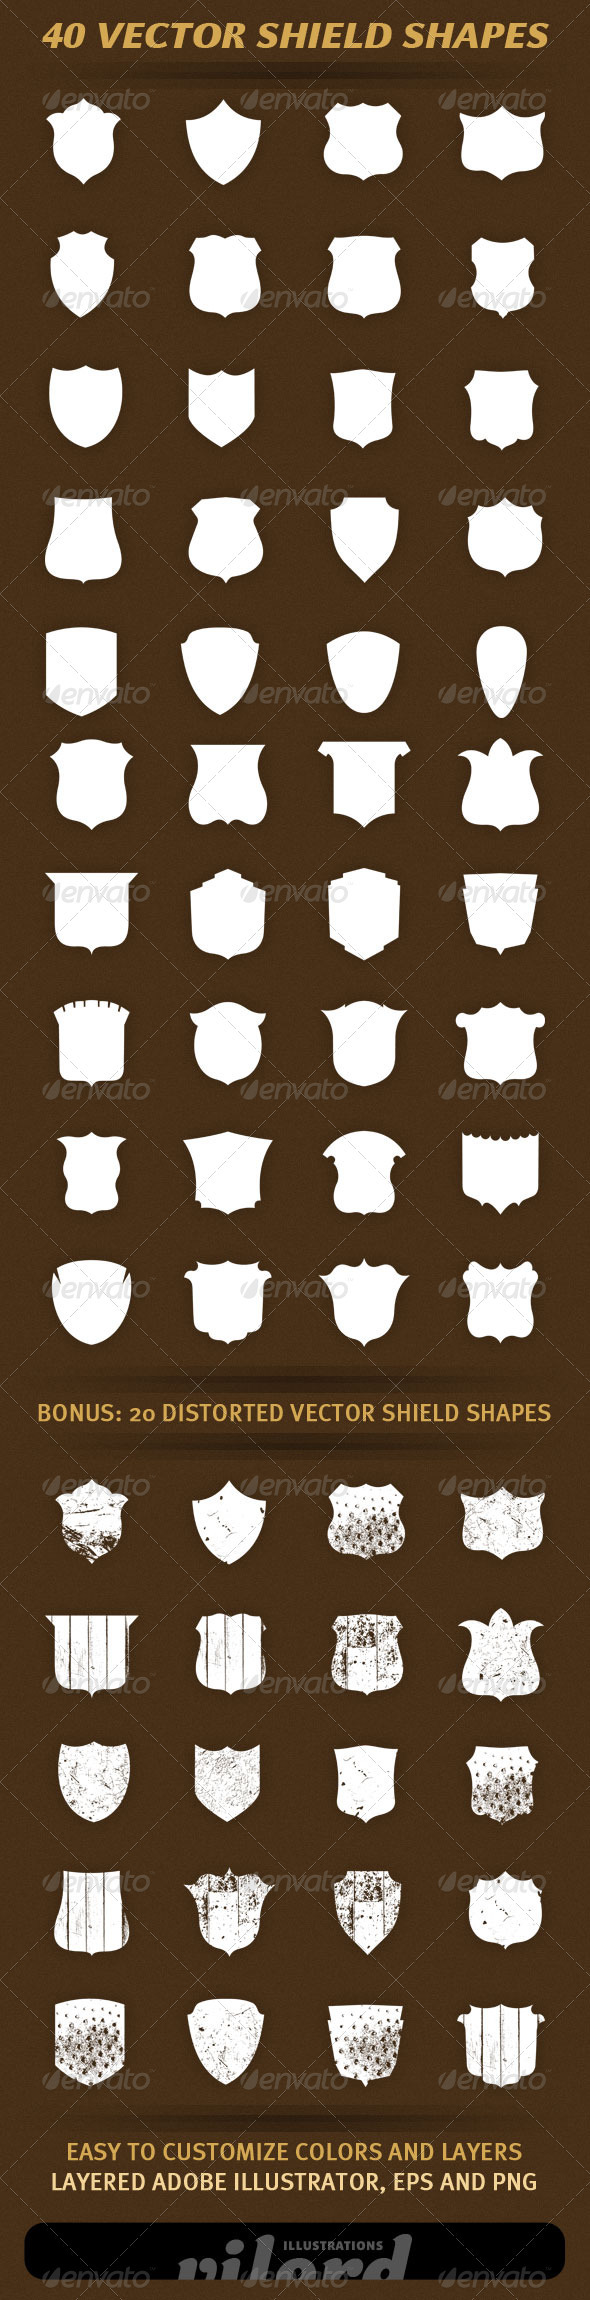 GraphicRiver 40 Vector Shield Shapes 1732596